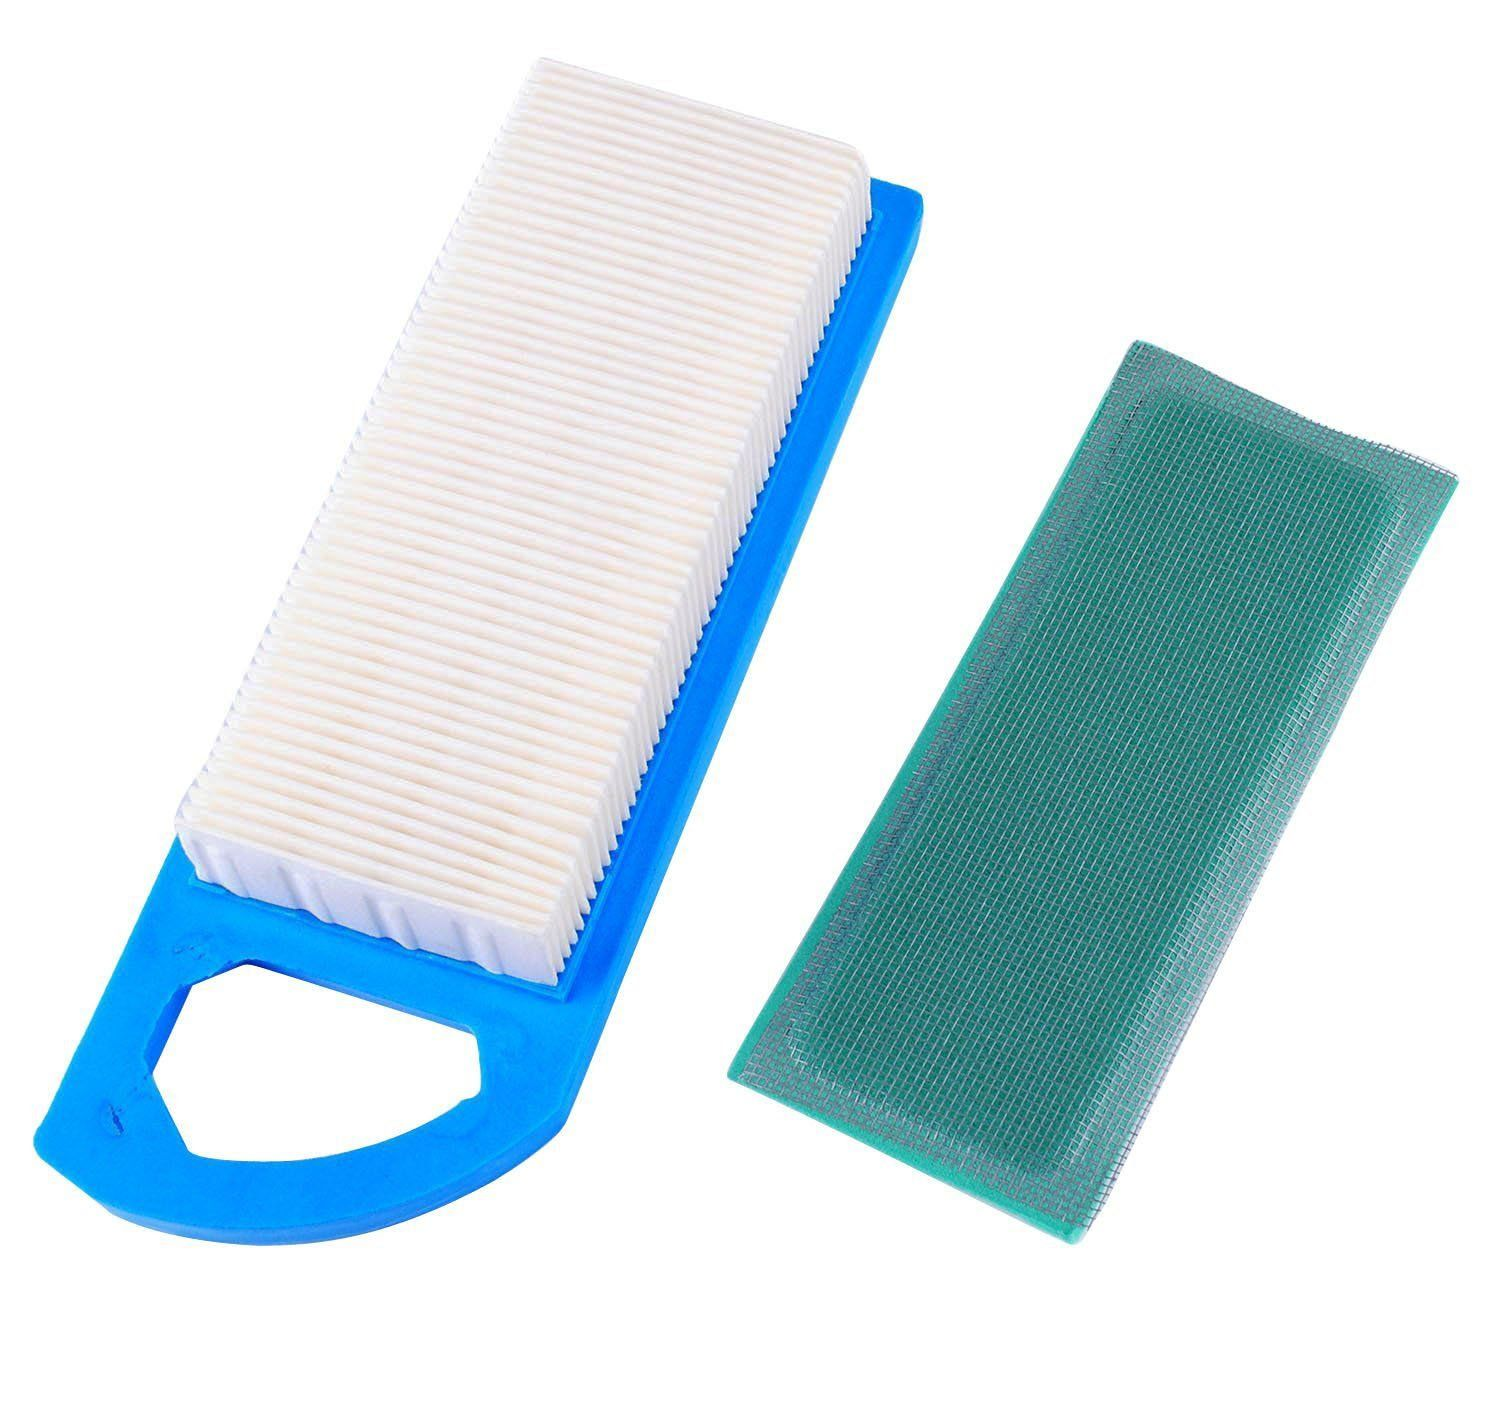 Podoy Gy20573 Air Filter for Briggs Stratton 698083 697153